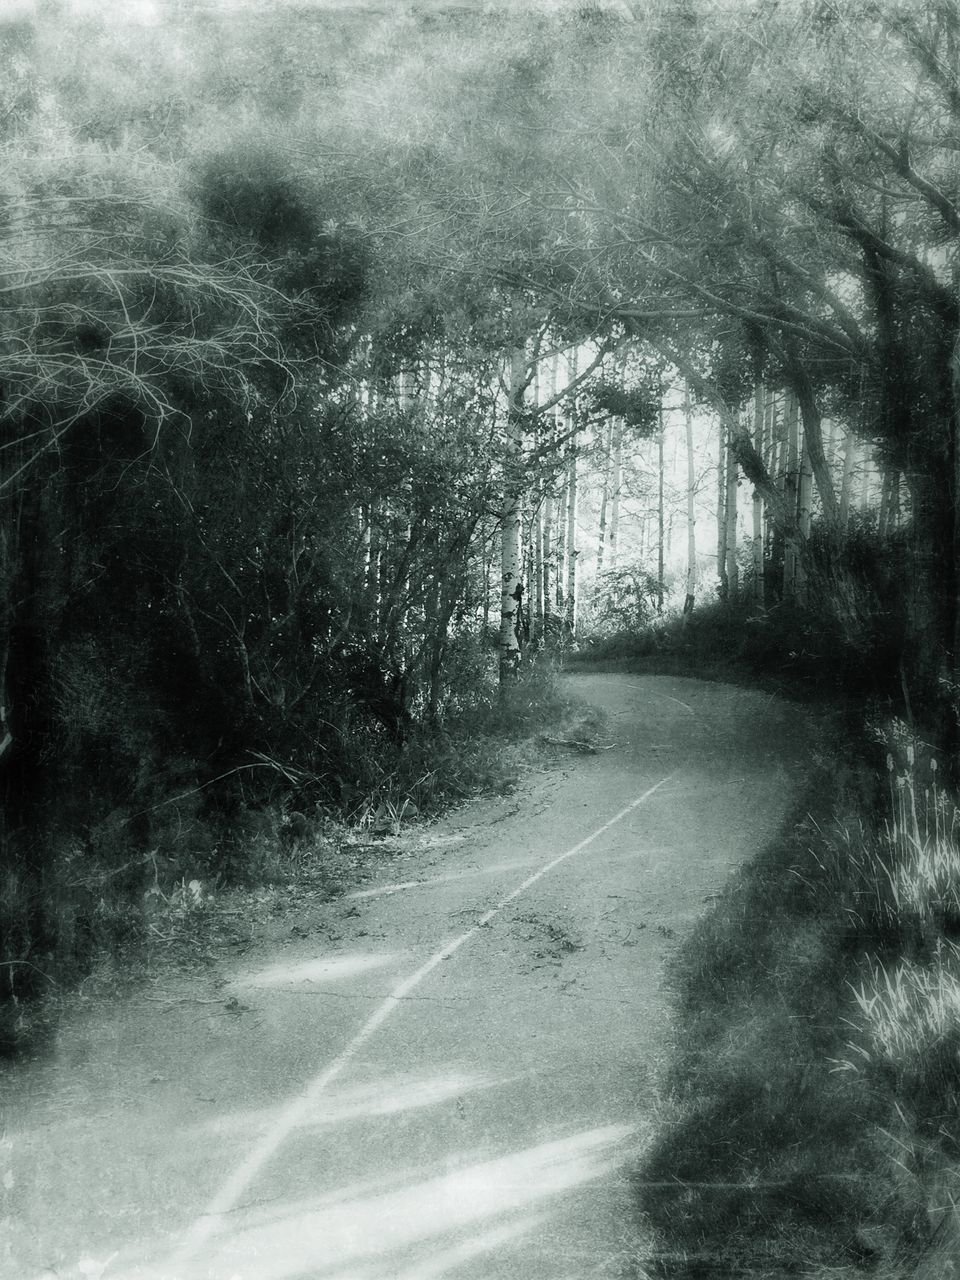 tree, road, the way forward, forest, no people, day, outdoors, nature, landscape